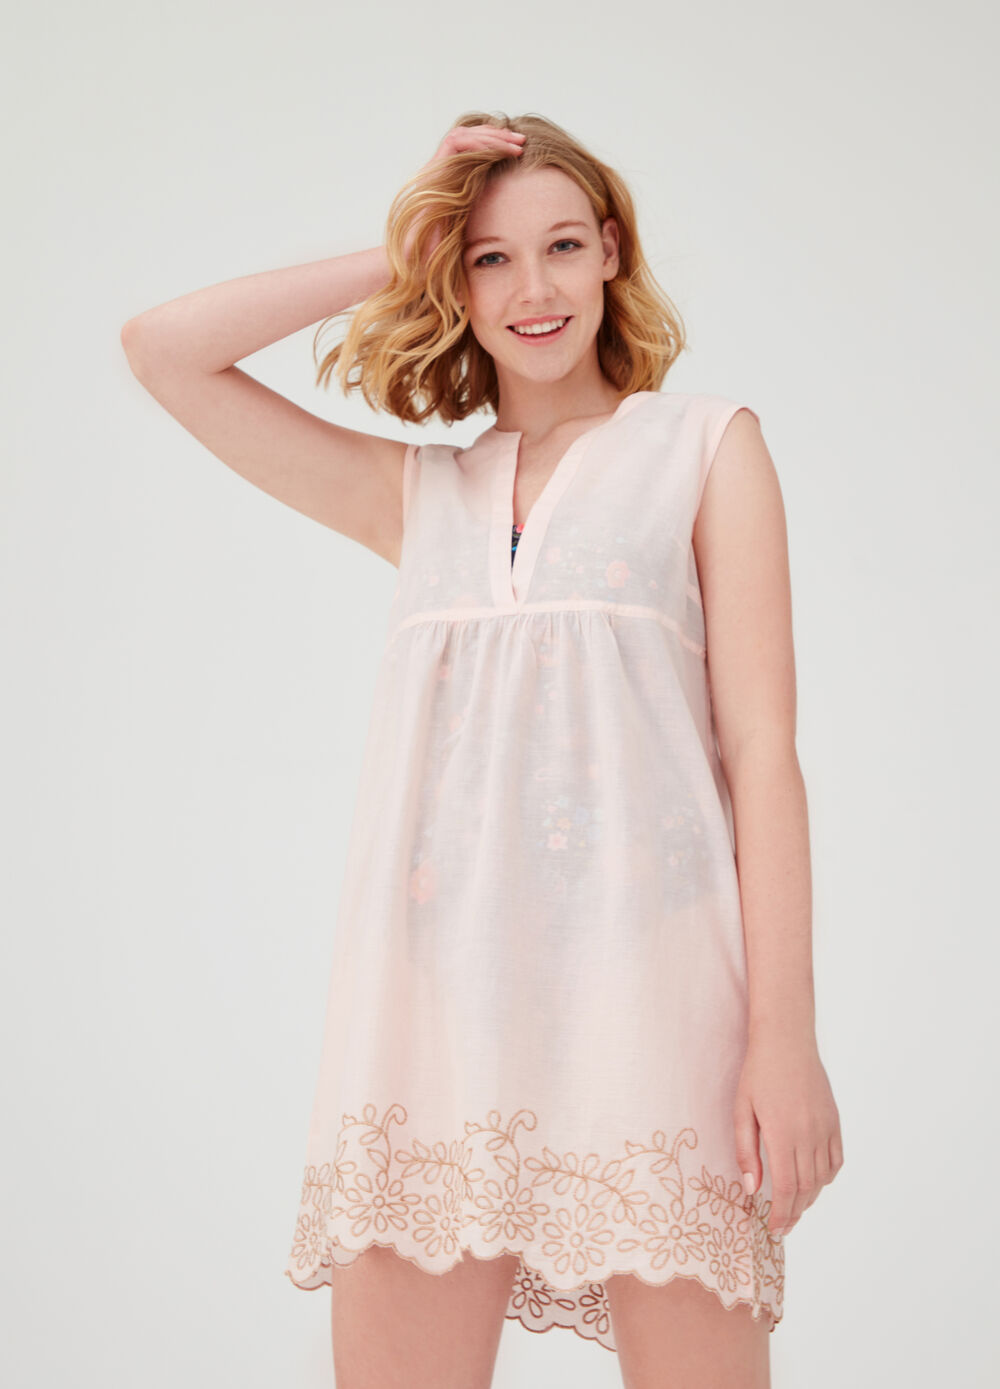 Cotton beach cover-up with embroidery